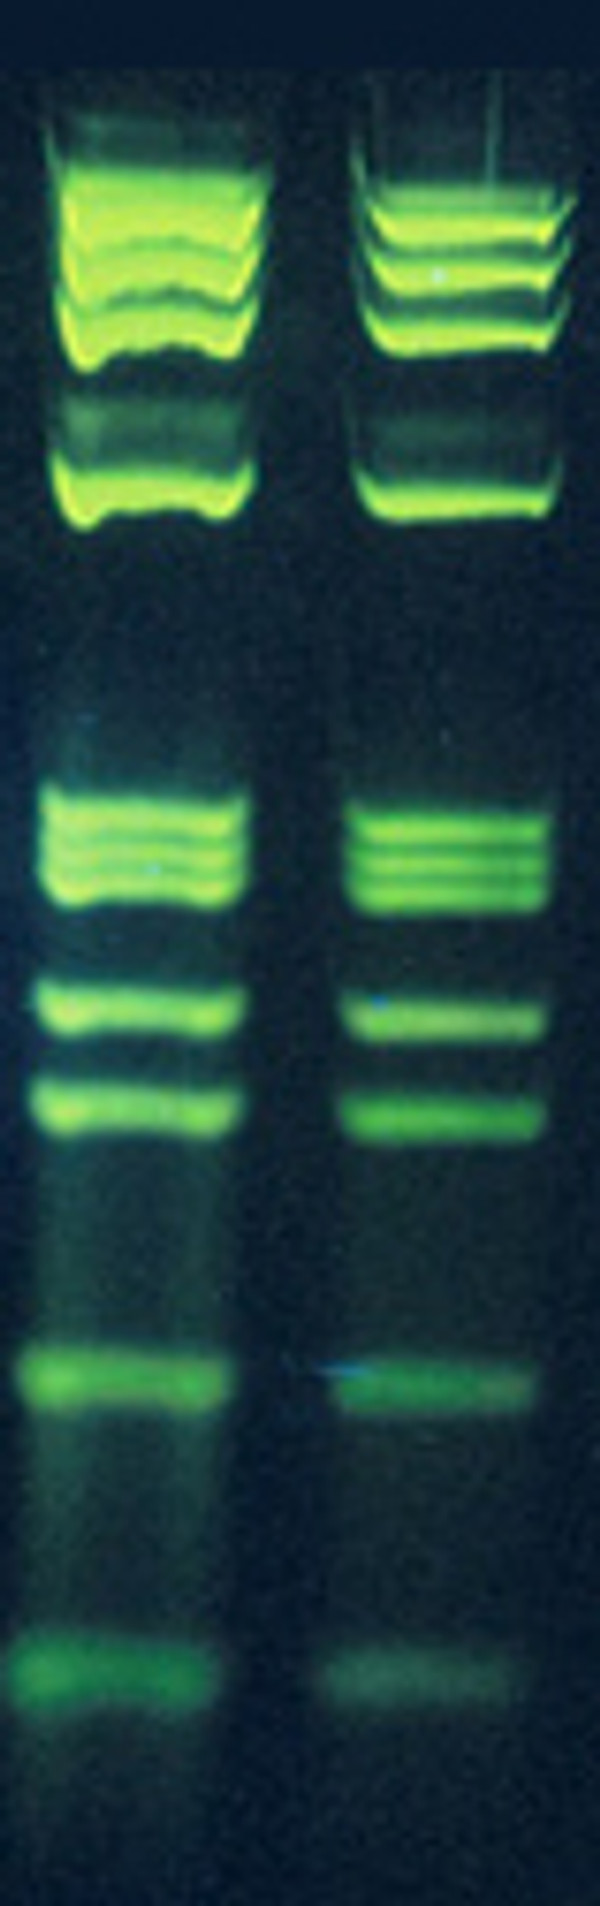 Gel Green like DNA Stain for Gels 10,000x